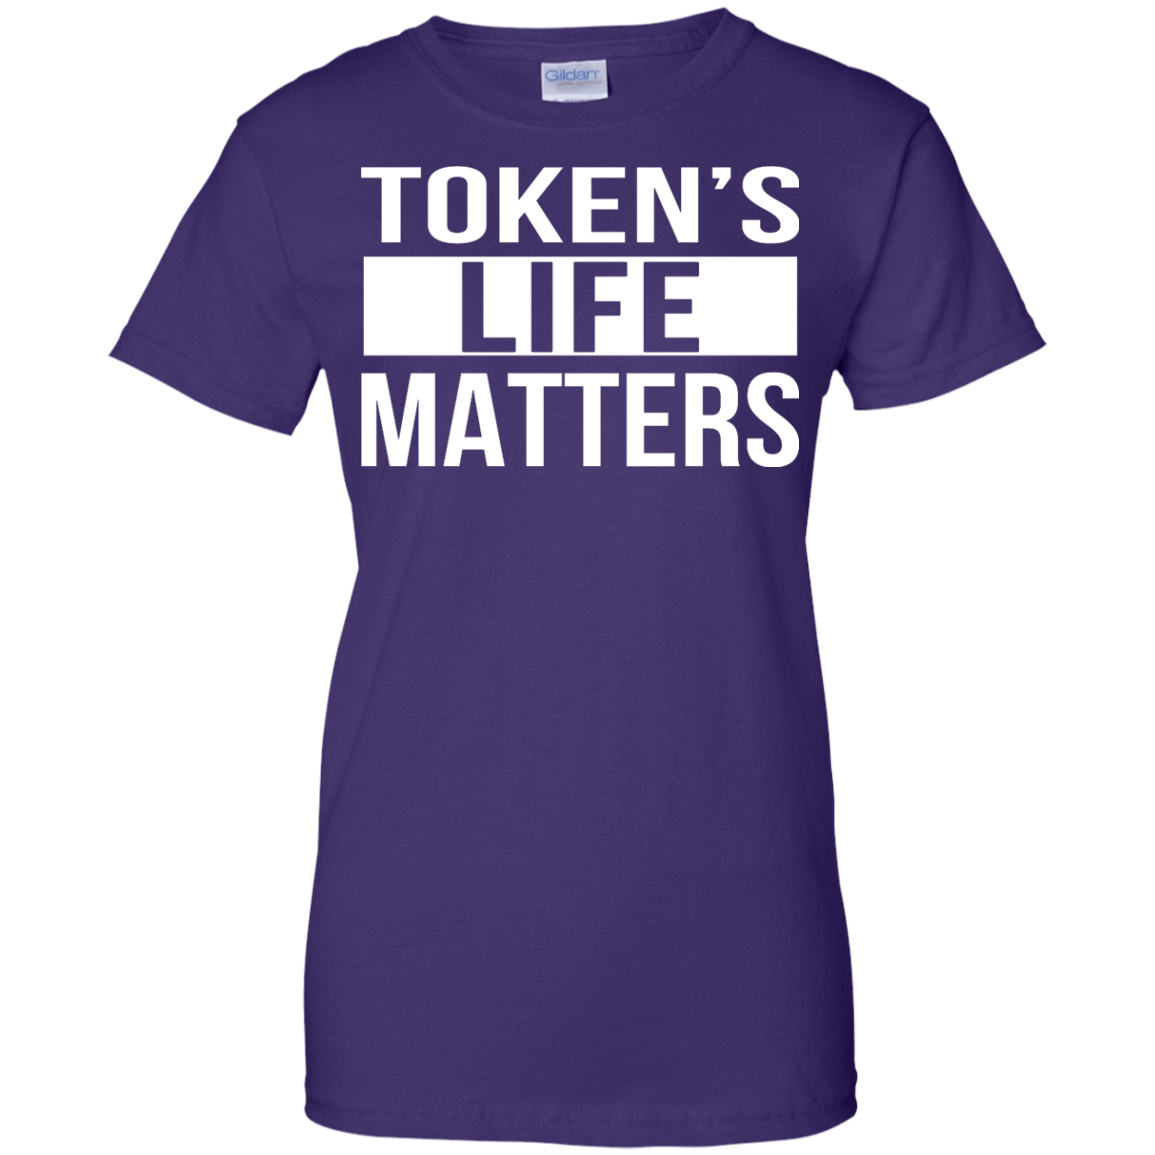 Token's Life Matters T Shirt (South Park Recreation)